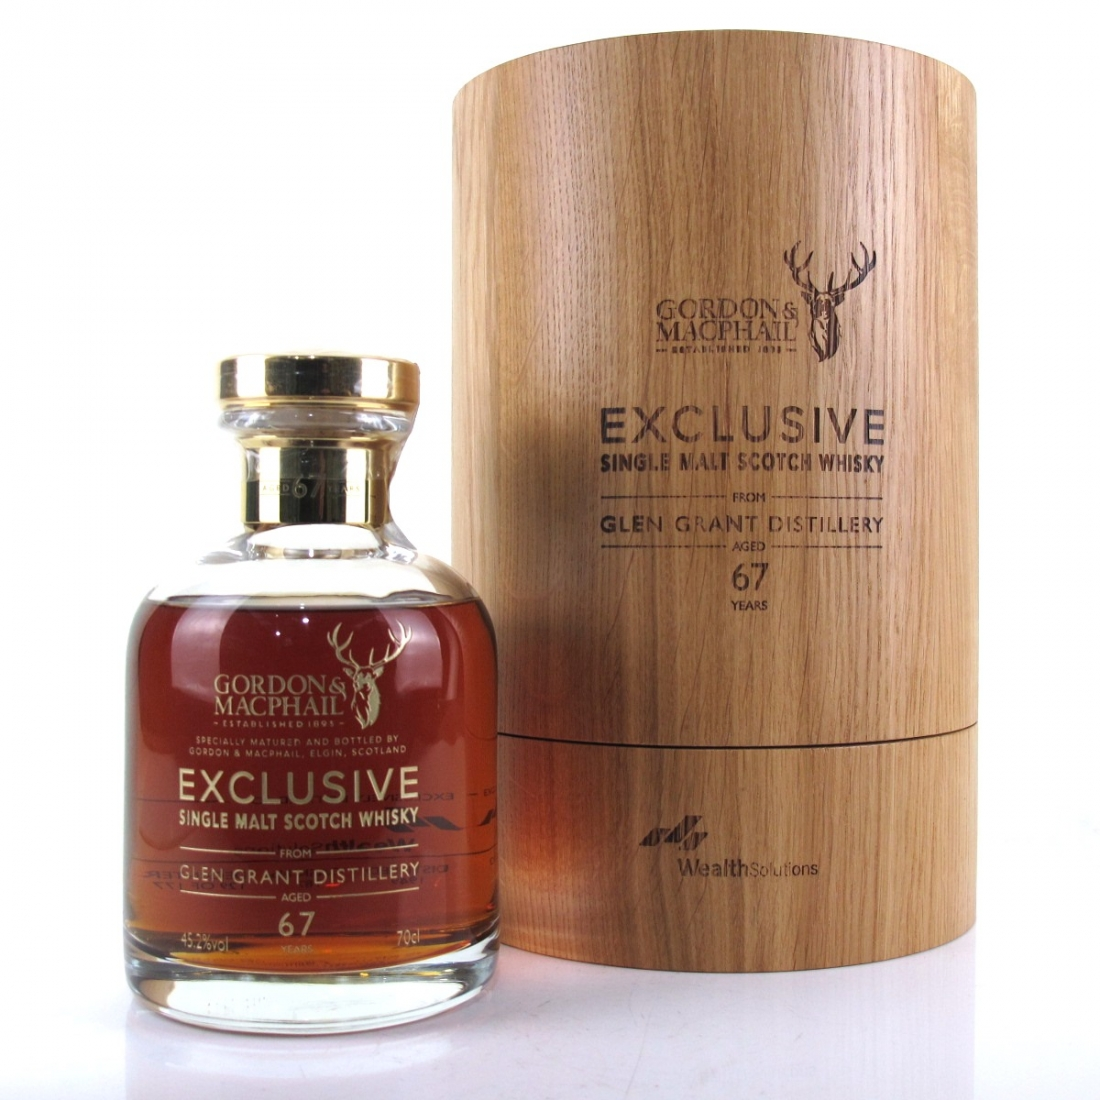 Glen Grant 1949 Gordon and MacPhail 67 Year Old / Wealth Solutions